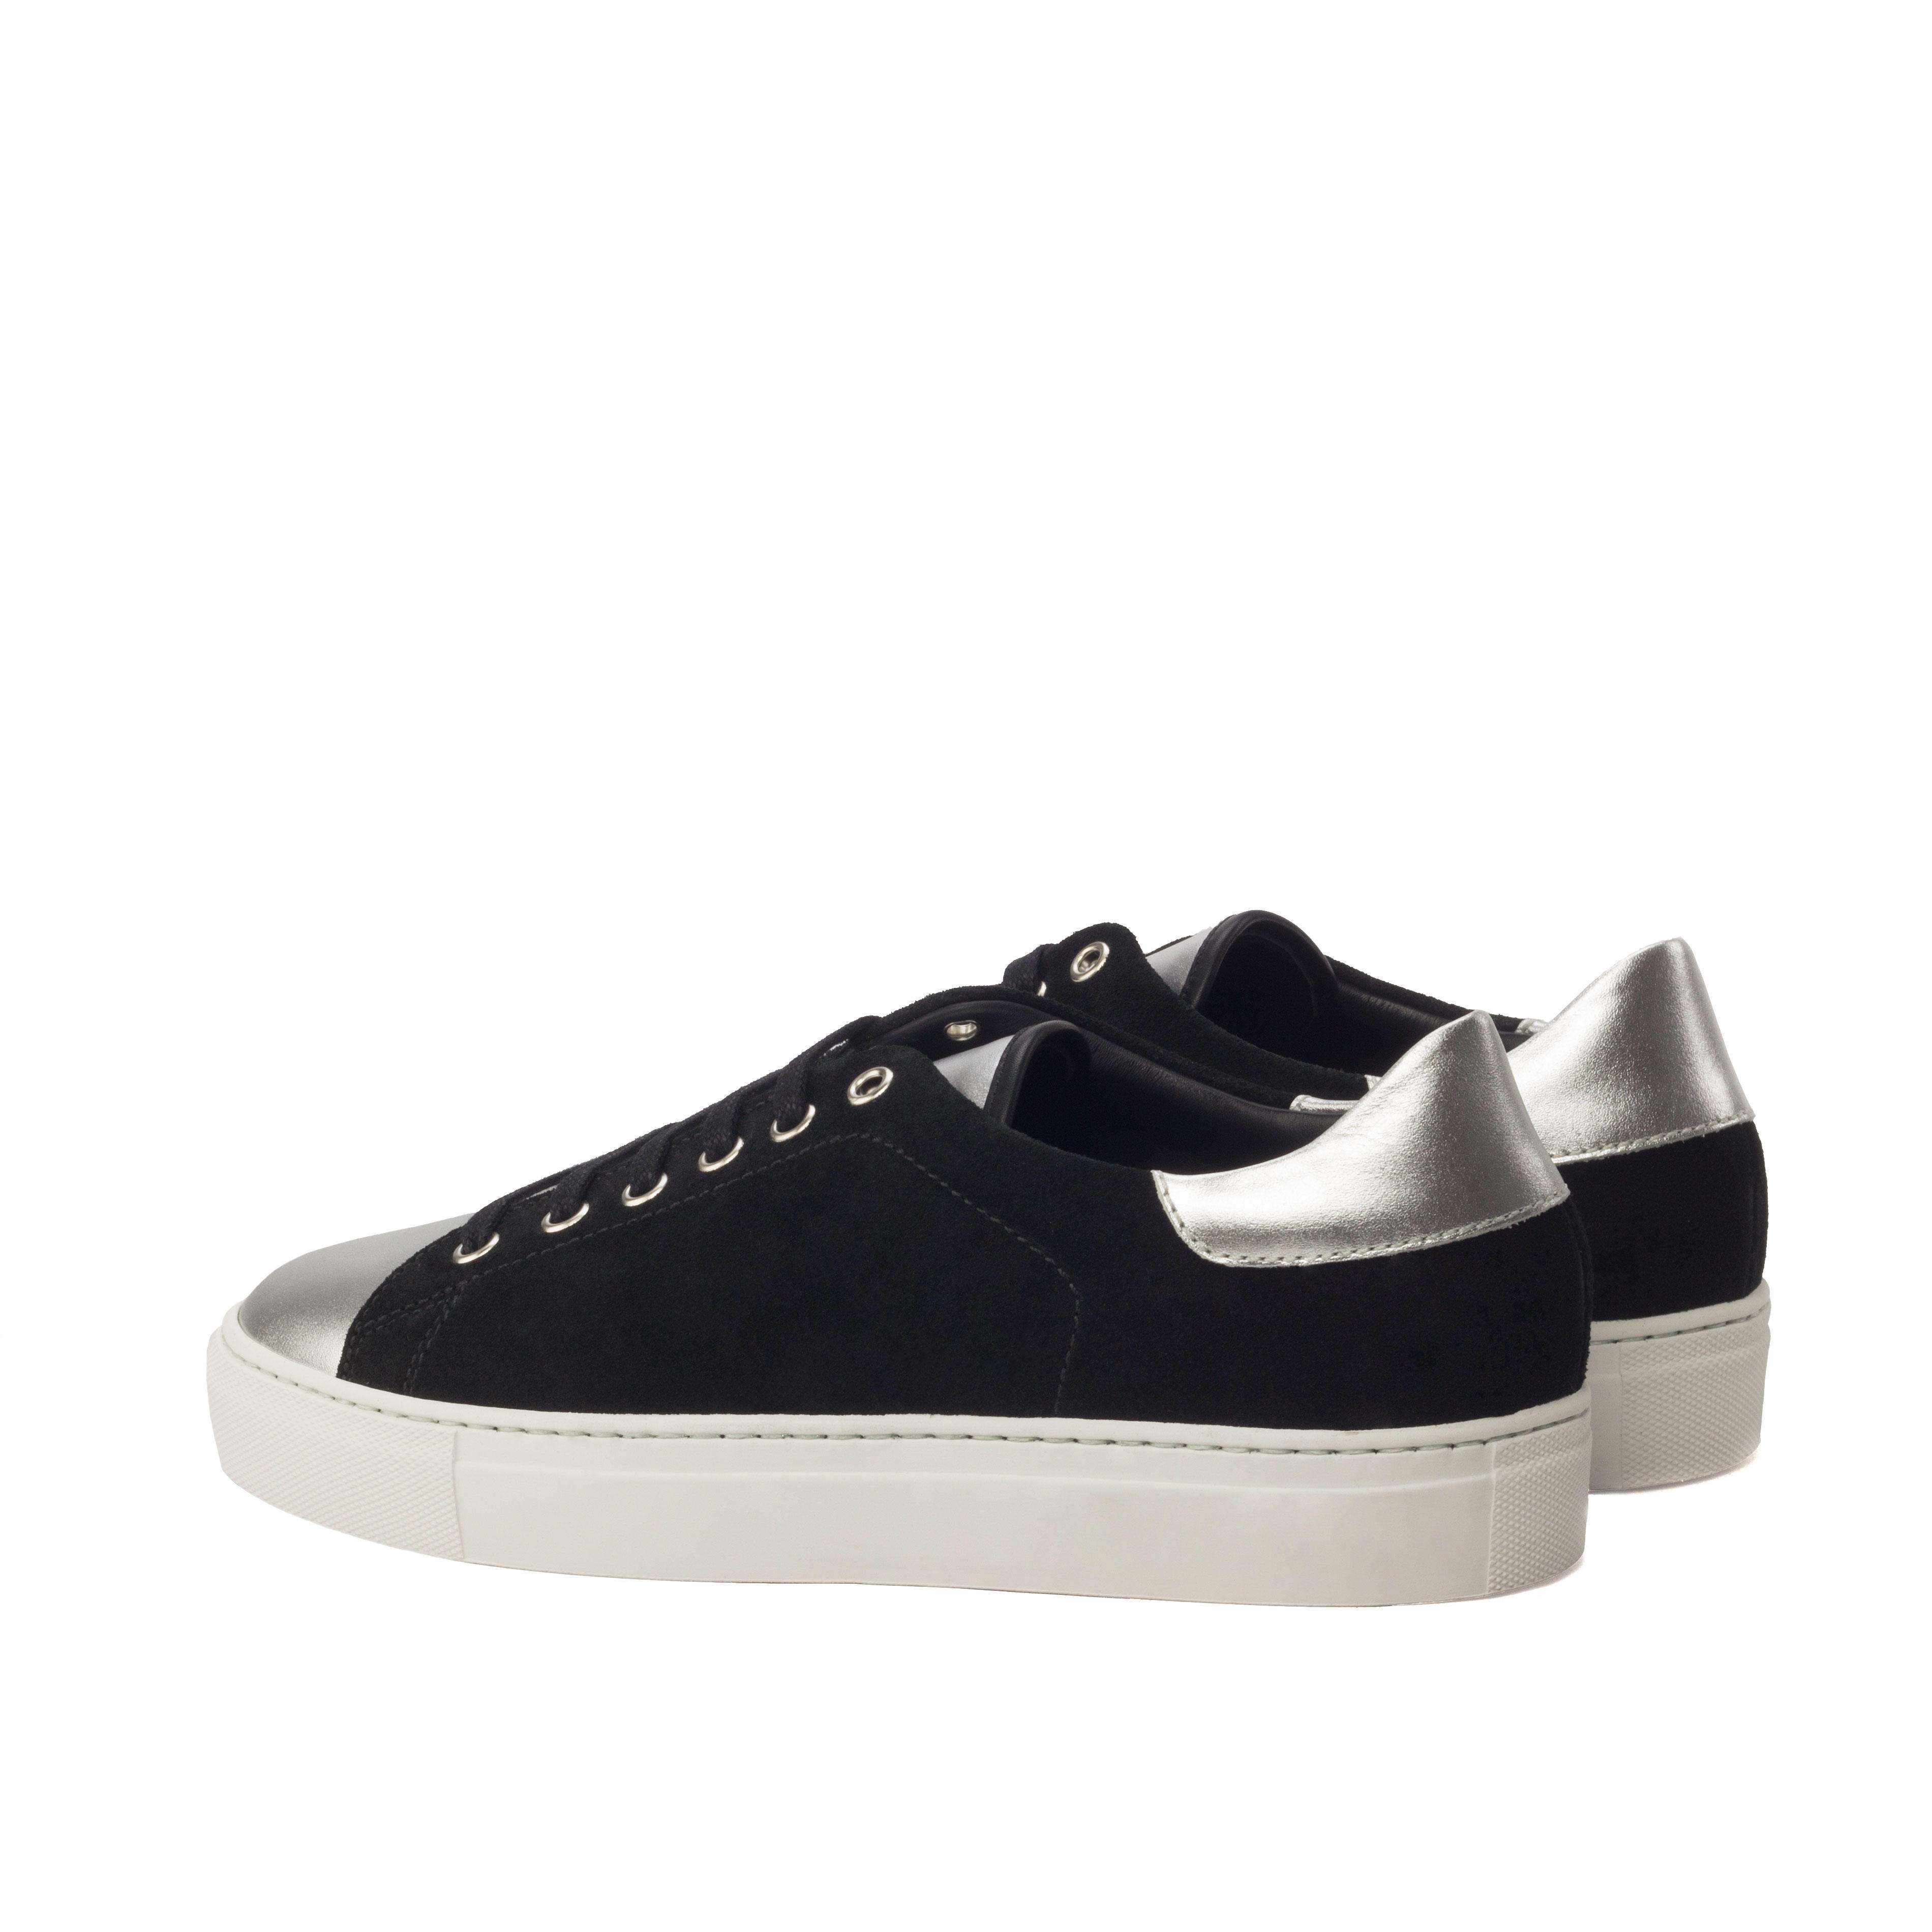 MANOR OF LONDON 'The Perry' Black Suede & Chrome Calfskin Tennis Trainer Luxury Custom Initials Monogrammed Back Side View